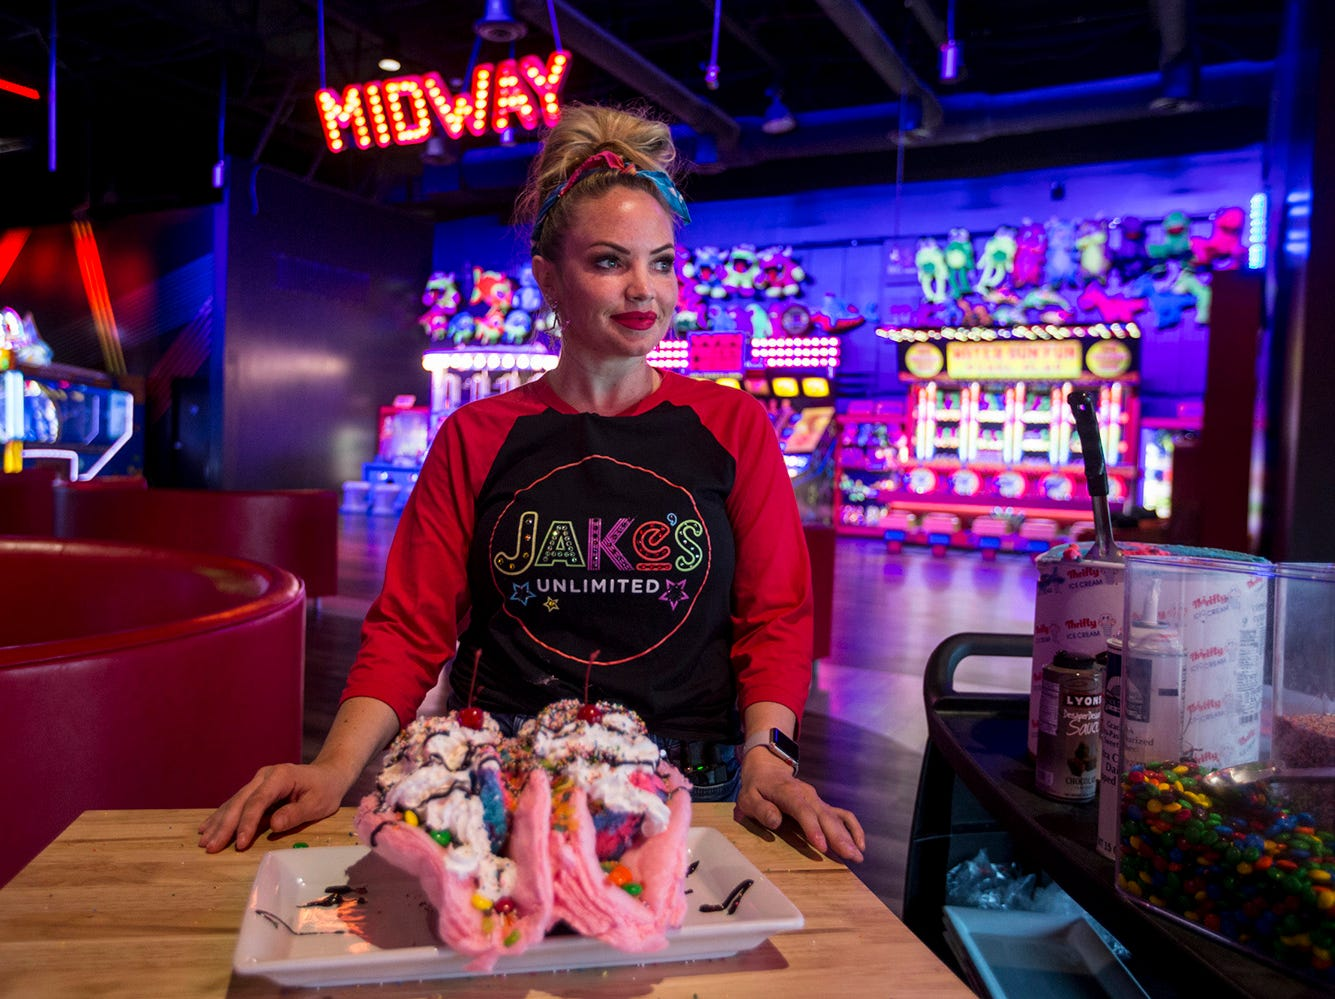 Lacey Hall poses for a portrait with Unicorn Tacos on Monday, Apr. 1, 2019, at Jake's Unlimited in Mesa, Ariz. The dessert is made with a cotton candy shell, ice cream, cereal, sprinkles, M&M's, whipped cream, chocolate sauce, and cherries.